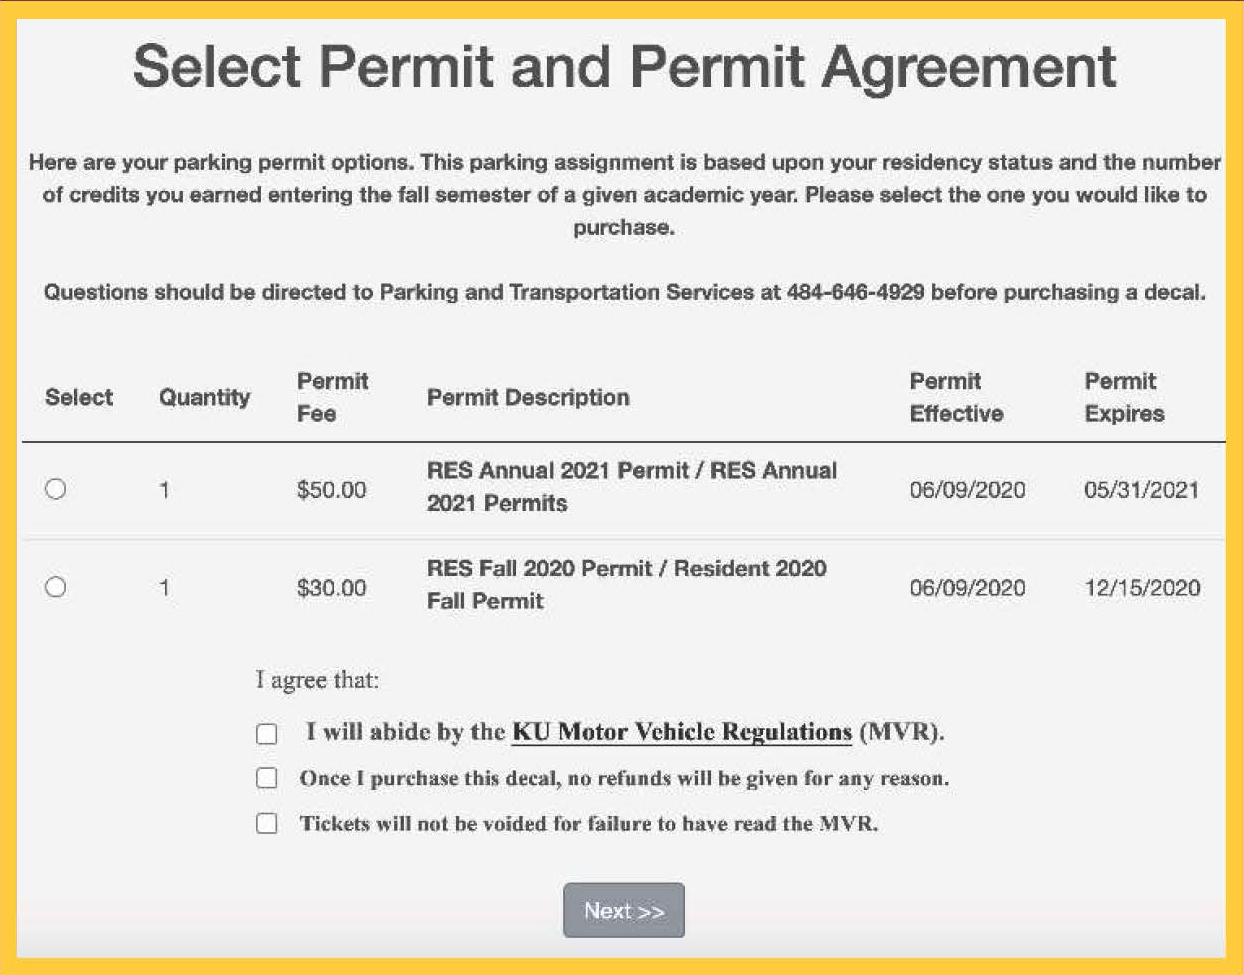 Permit agreement form